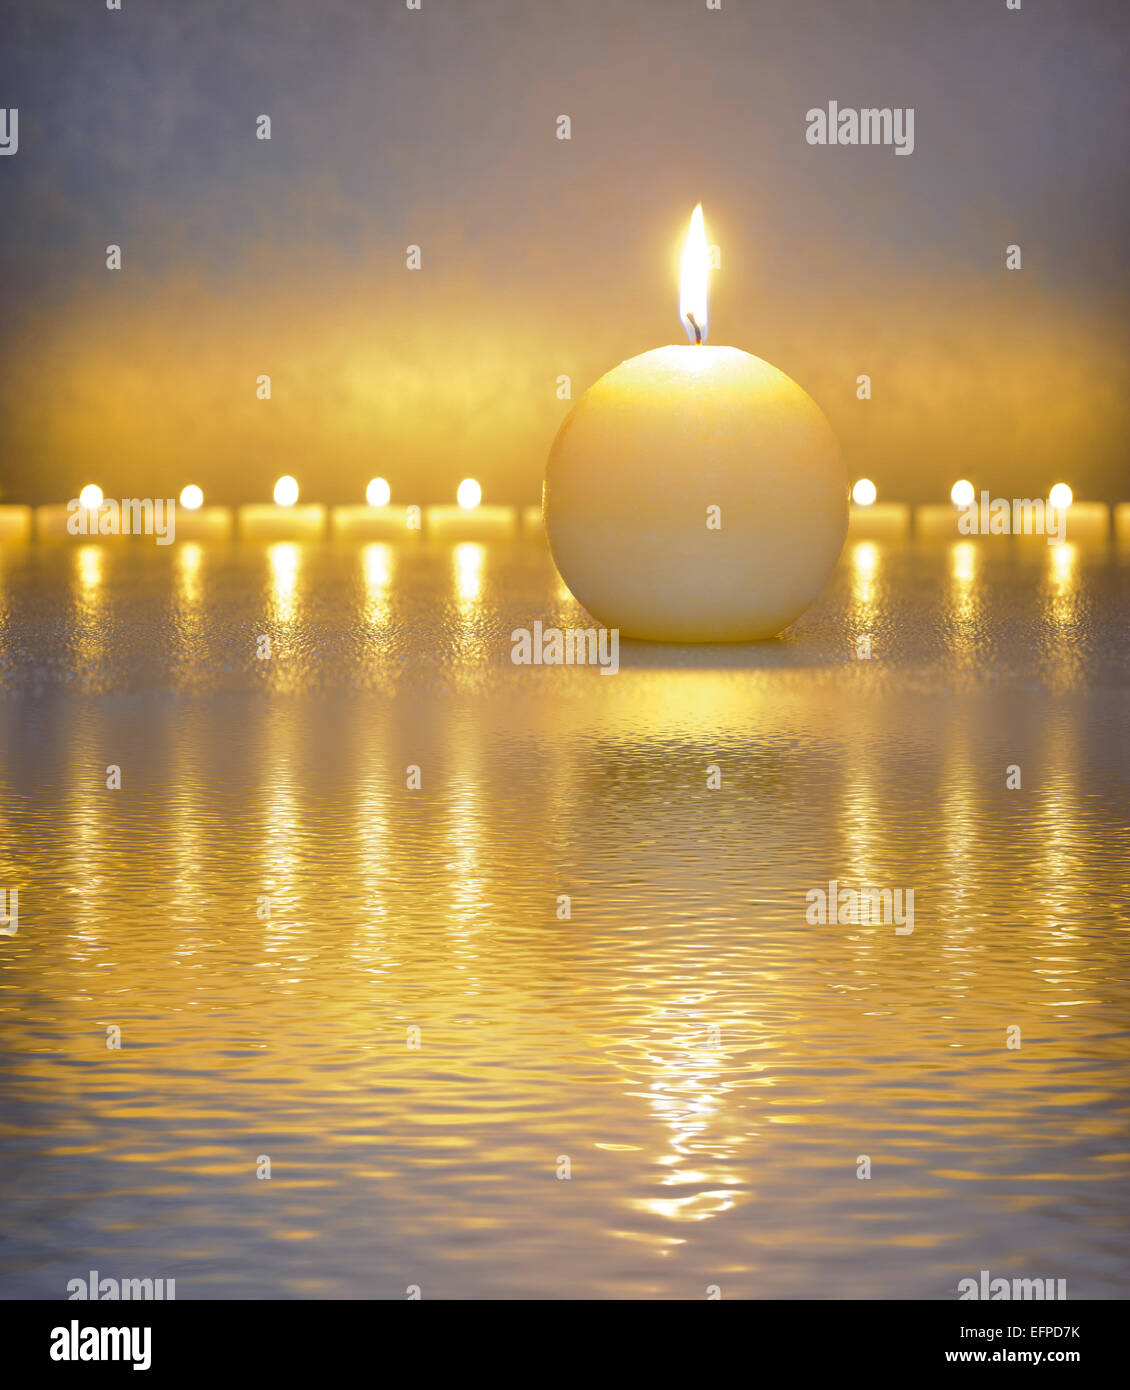 Japanese ZEN garden with candle lights mirroring in water - Stock Image